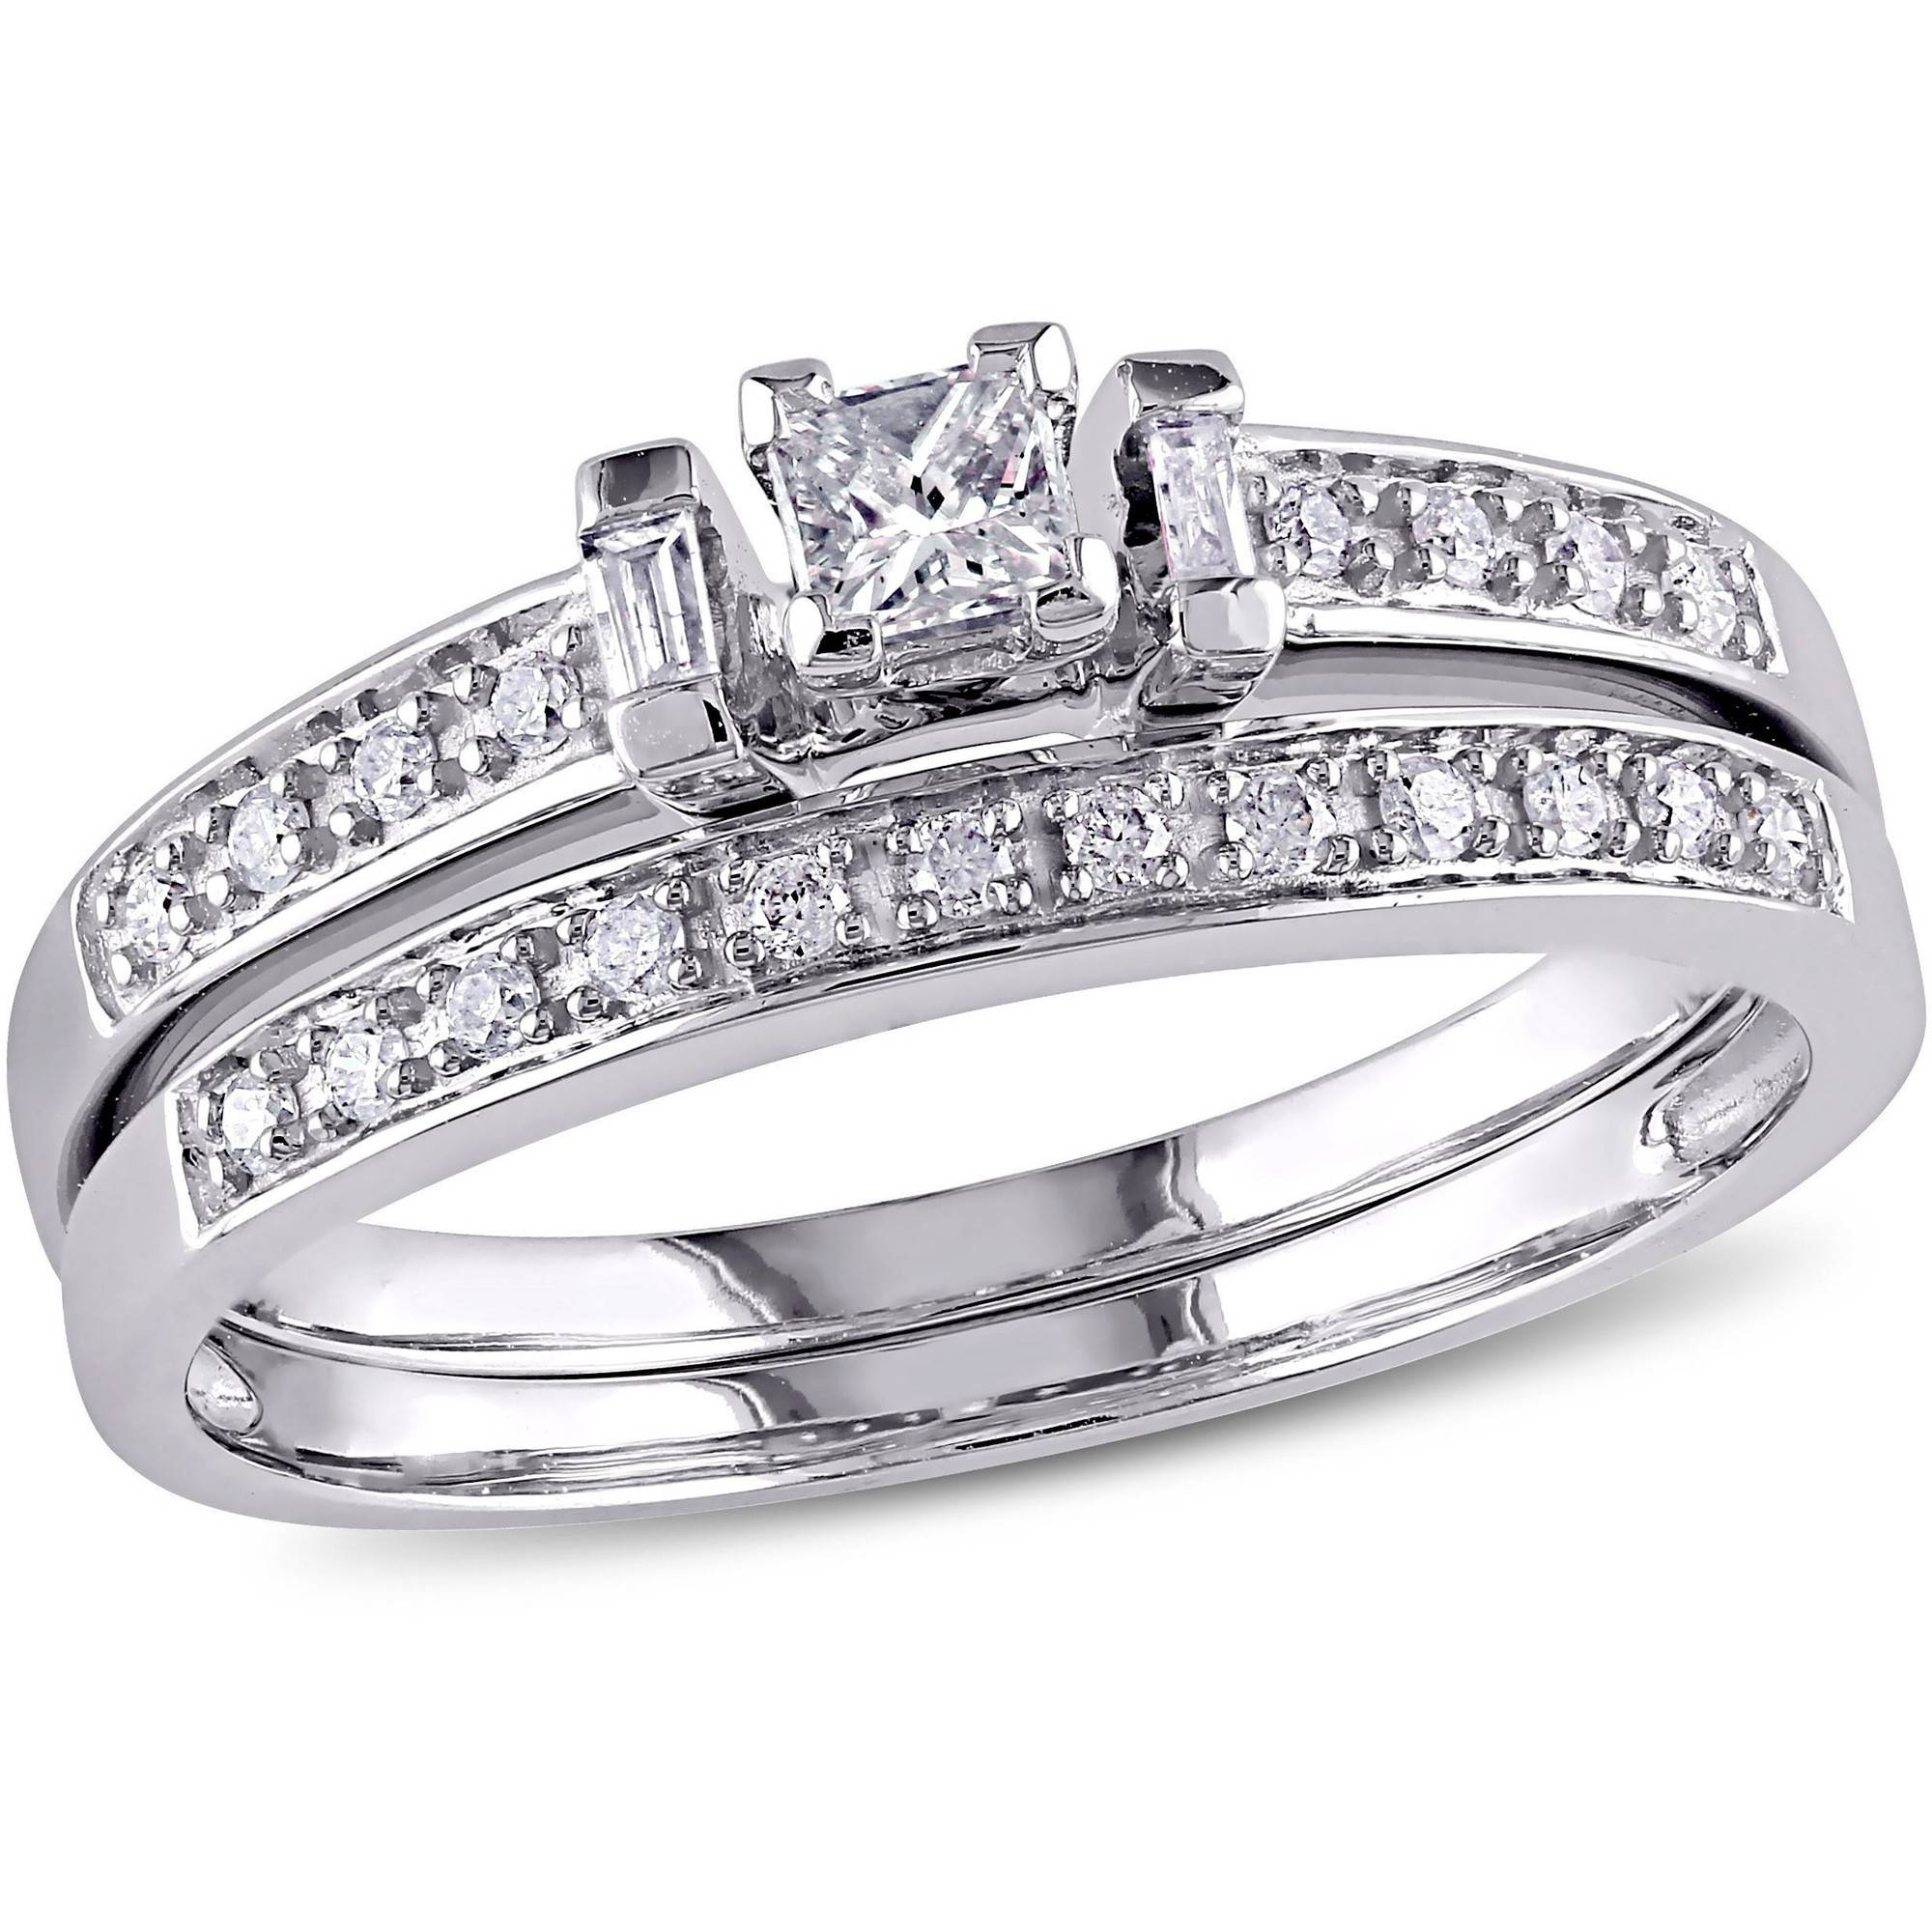 Miabella 1/3 Carat T.W. Princess, Baguette and Round-Cut Diamond 10kt White Gold Bridal Set